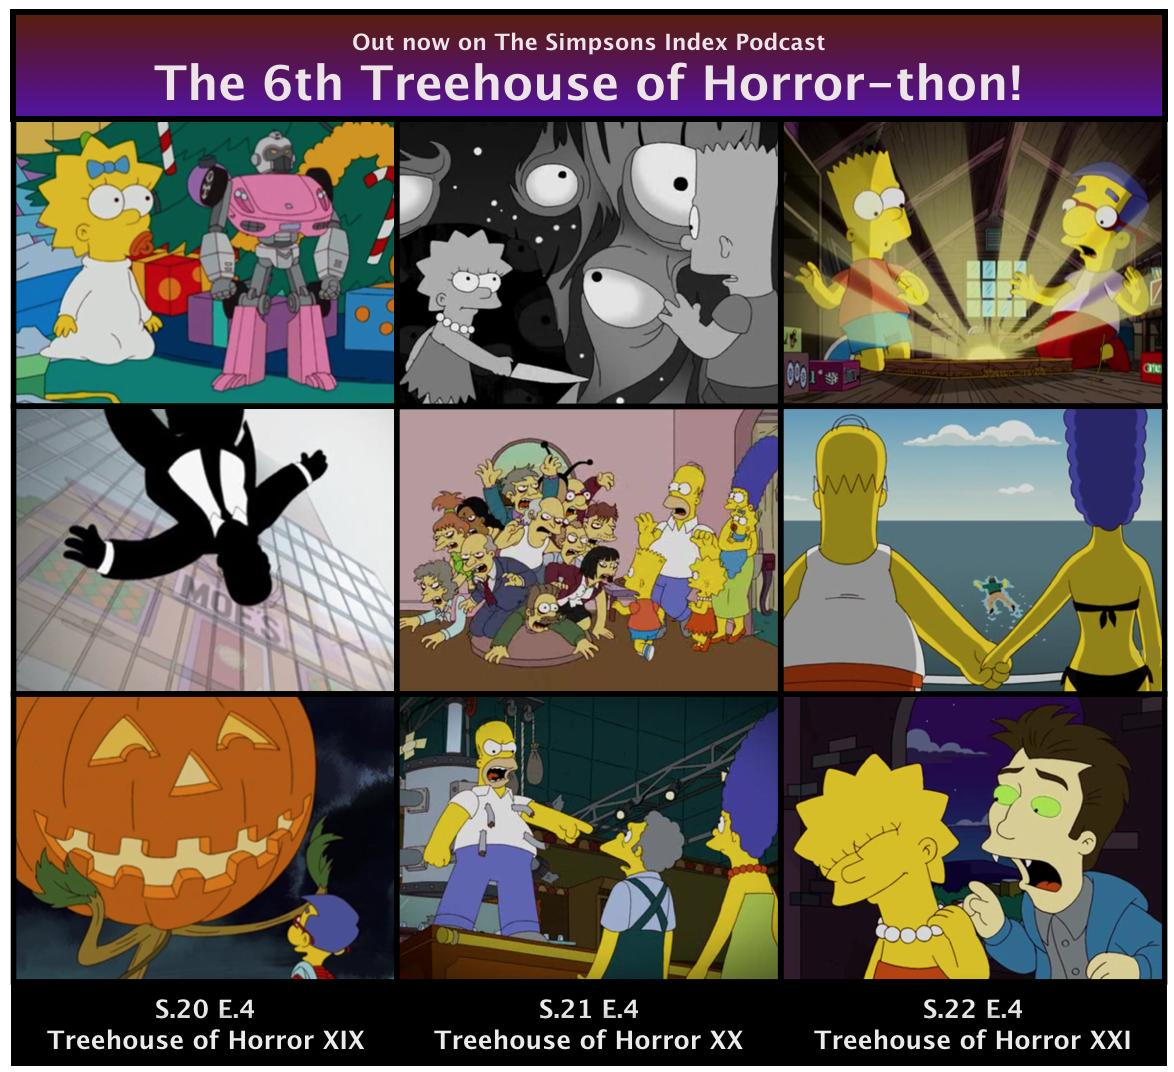 The 6th Treehouse Of Horror-thon podcast out now at Tweet added by